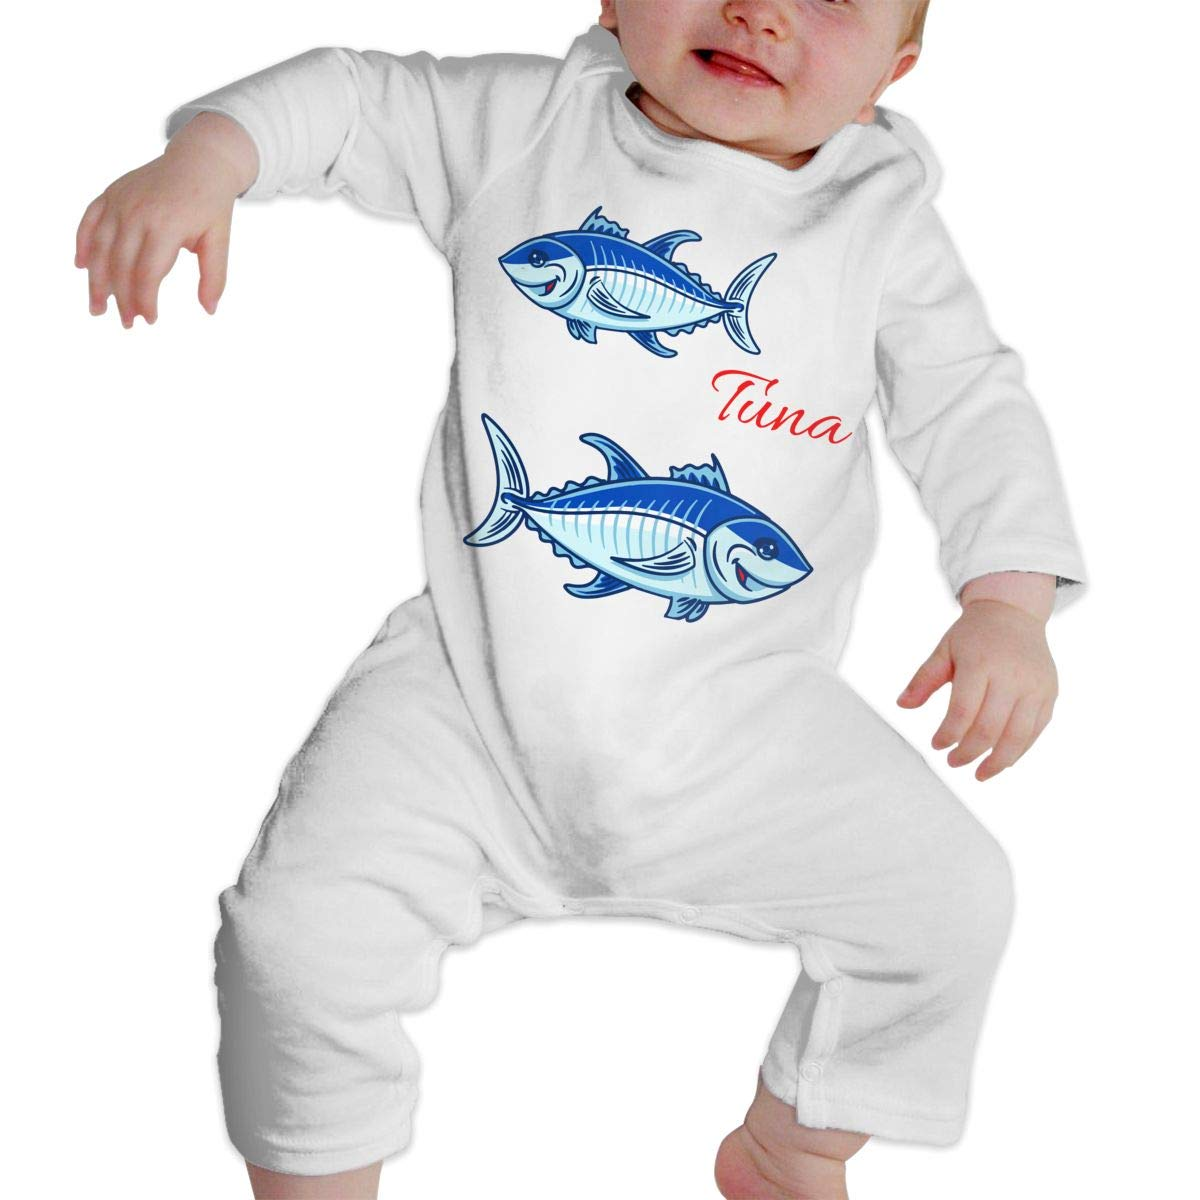 A1BY-5US Newborn Baby Boys Girls Cotton Long Sleeve Tuna Fish Climb Jumpsuit One-Piece Romper Clothes